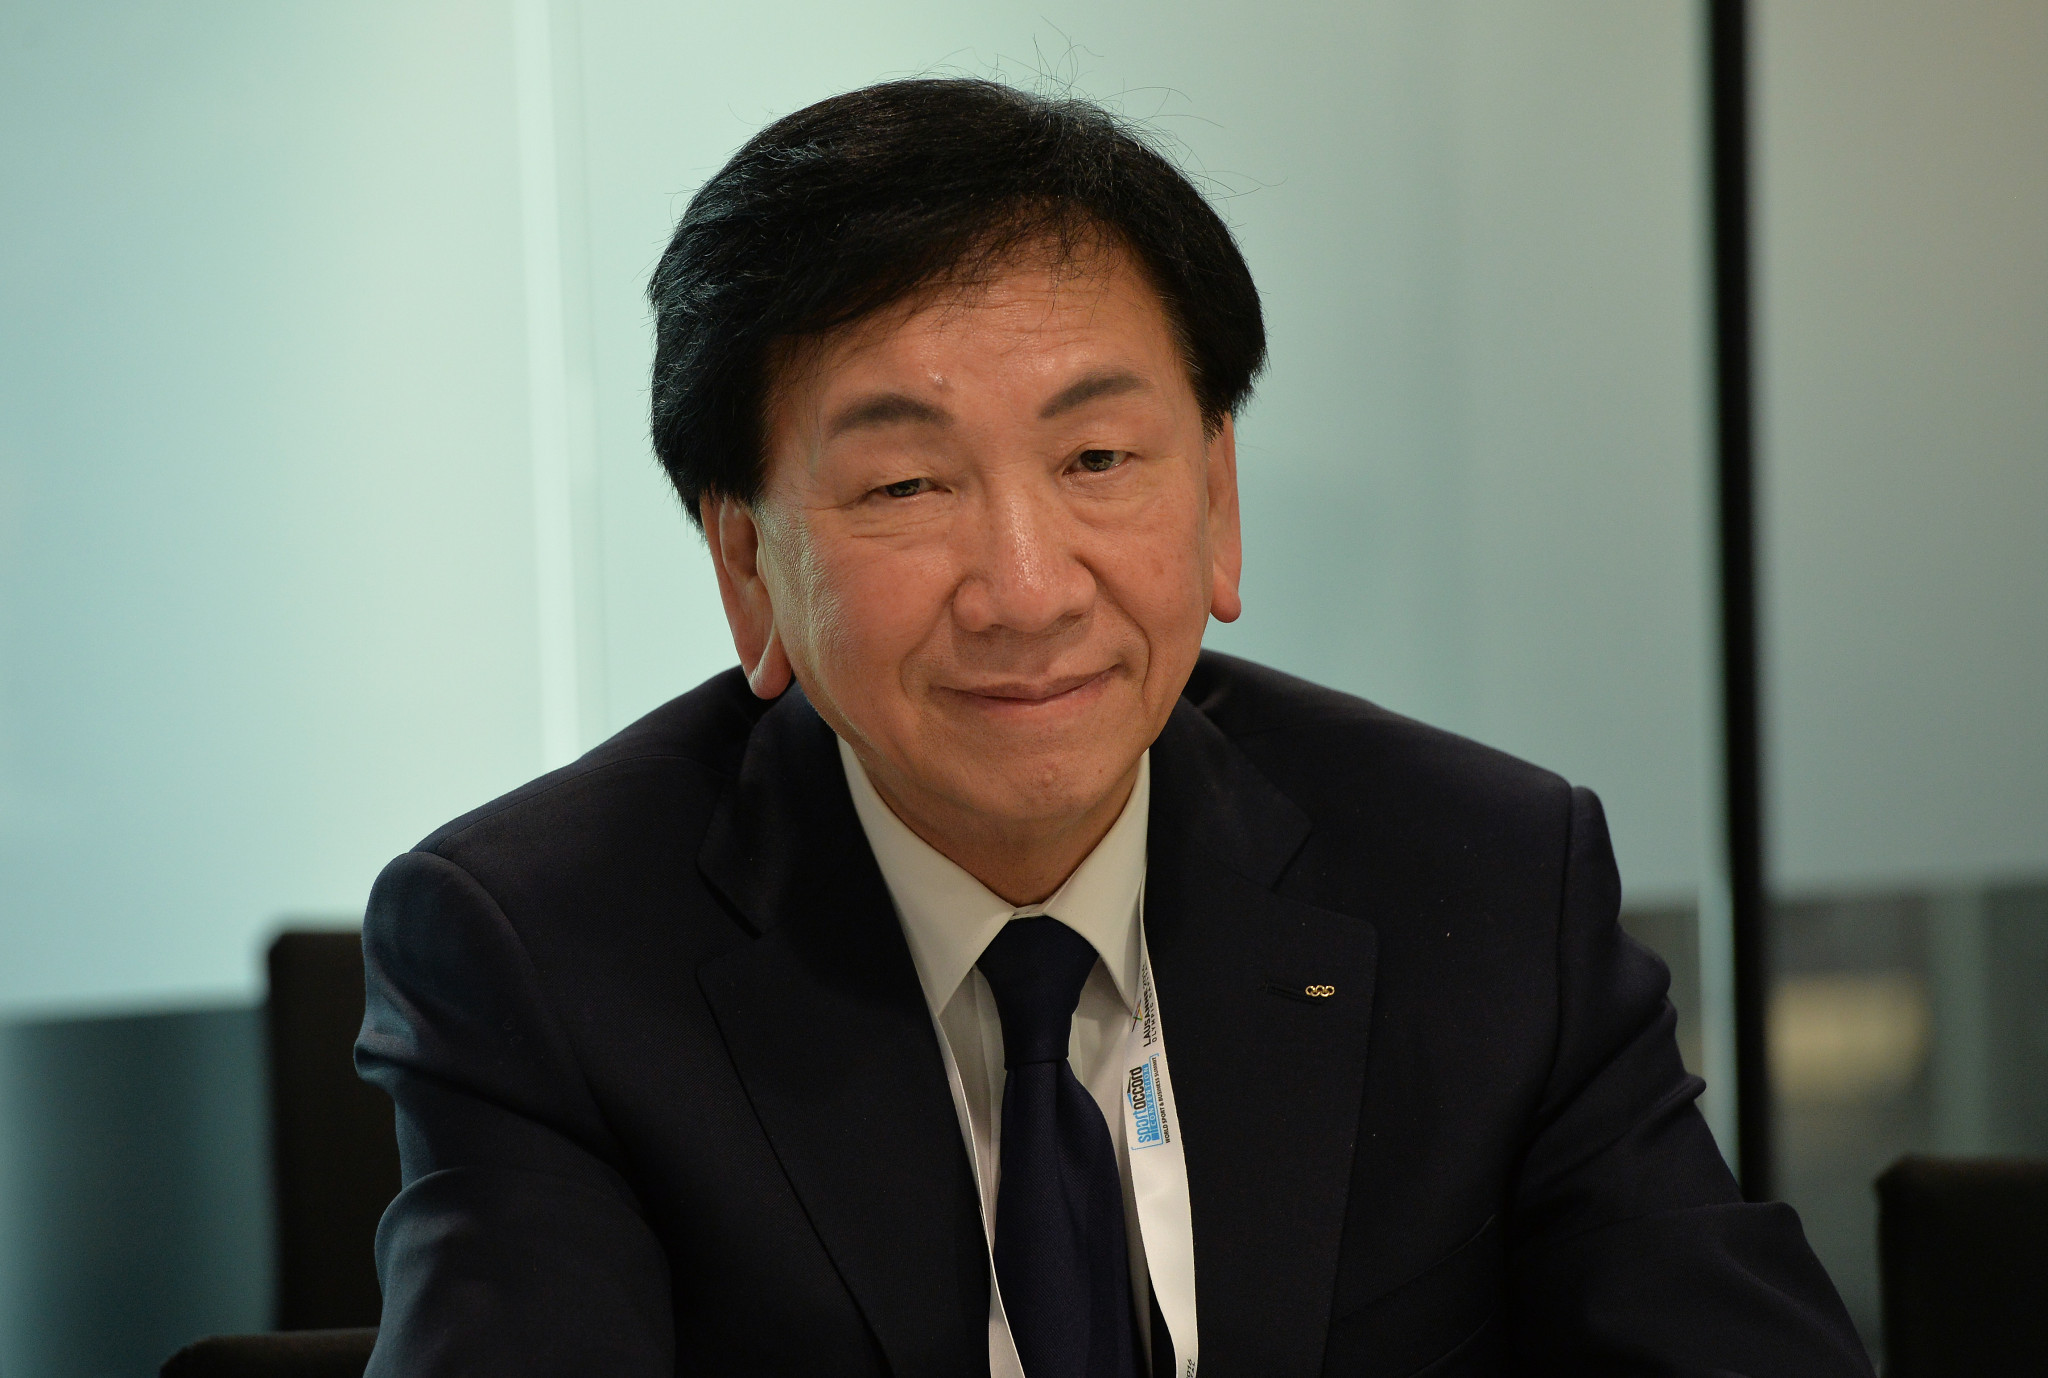 Exclusive: Wu resigns from IOC Executive Board after departing as AIBA President